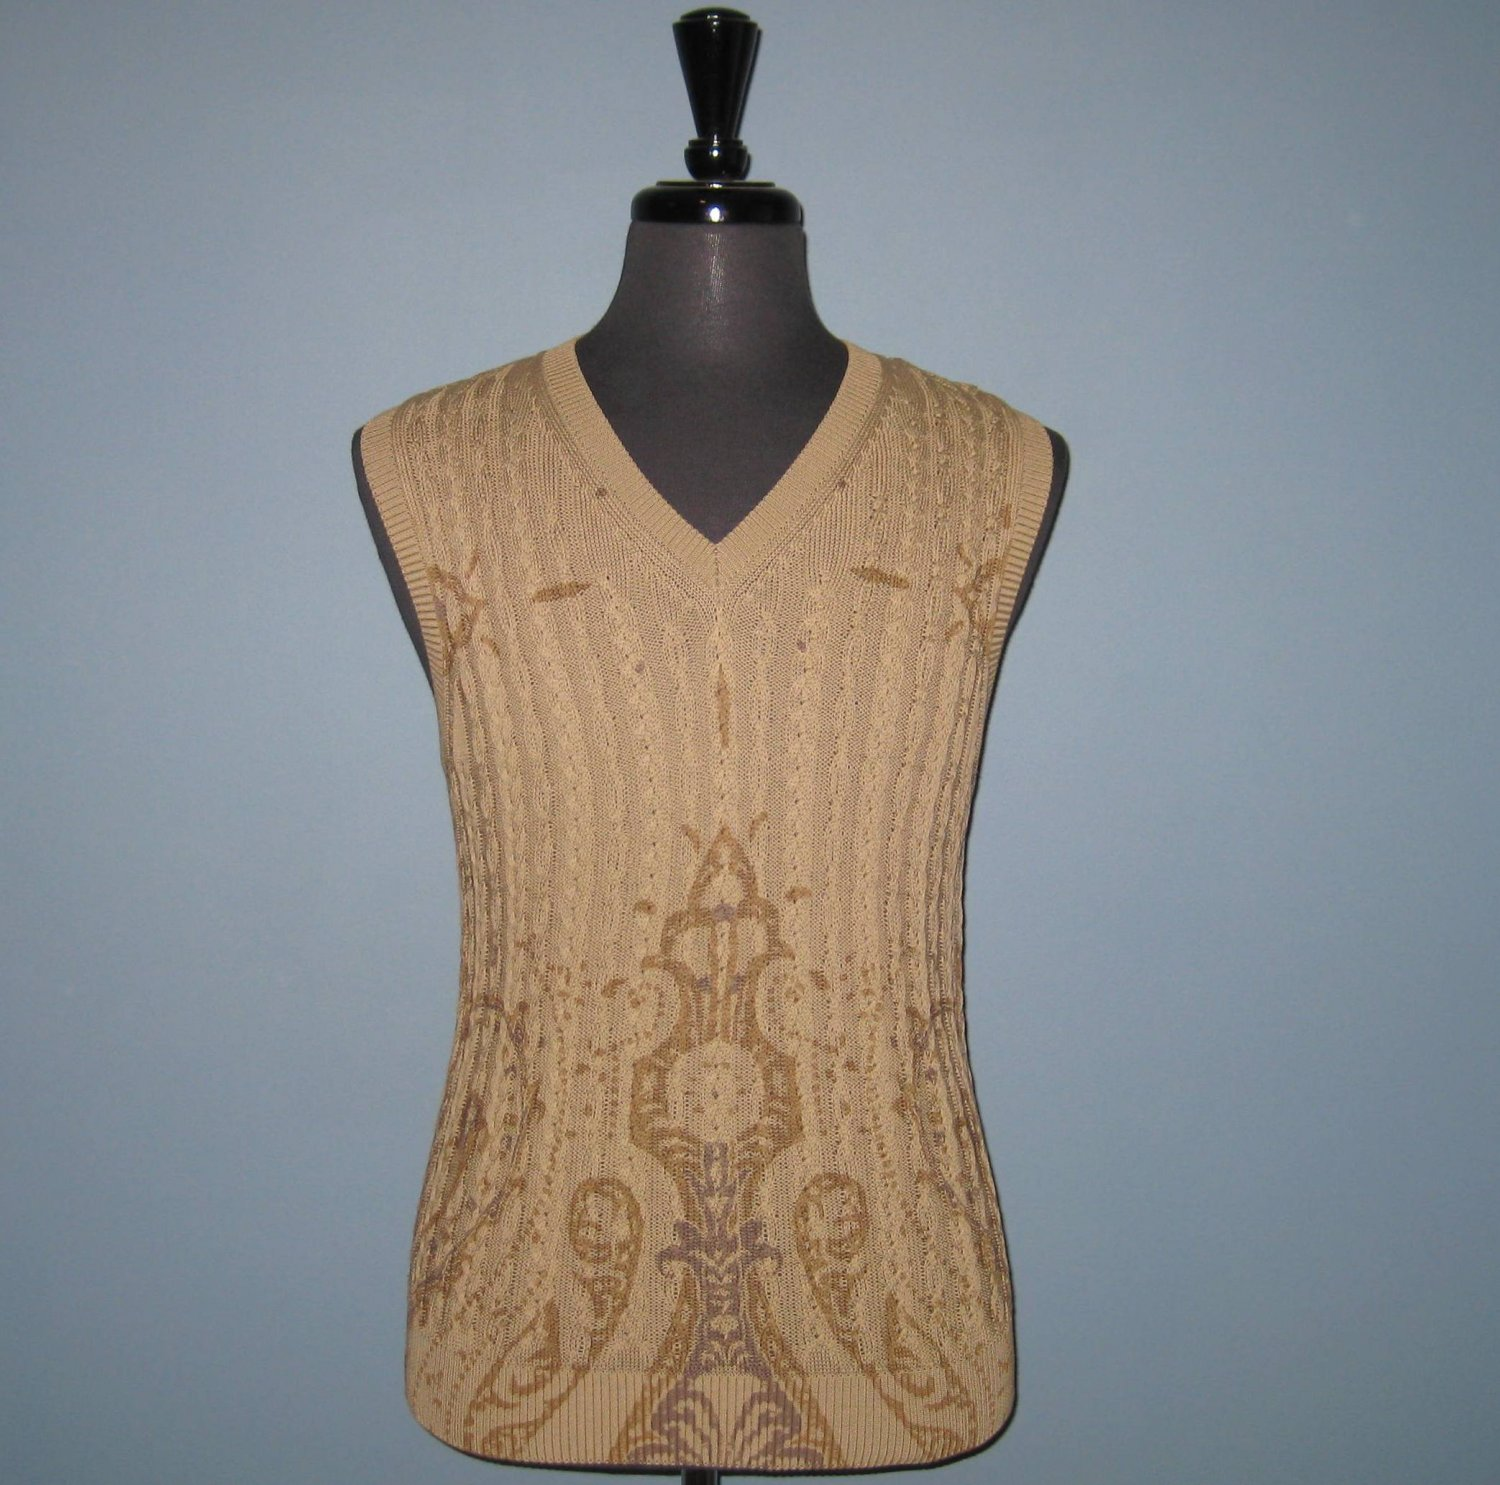 NWT Etro Italian Made Beige 100% Cotton Cable Knit V-Neck Sweater Vest - S